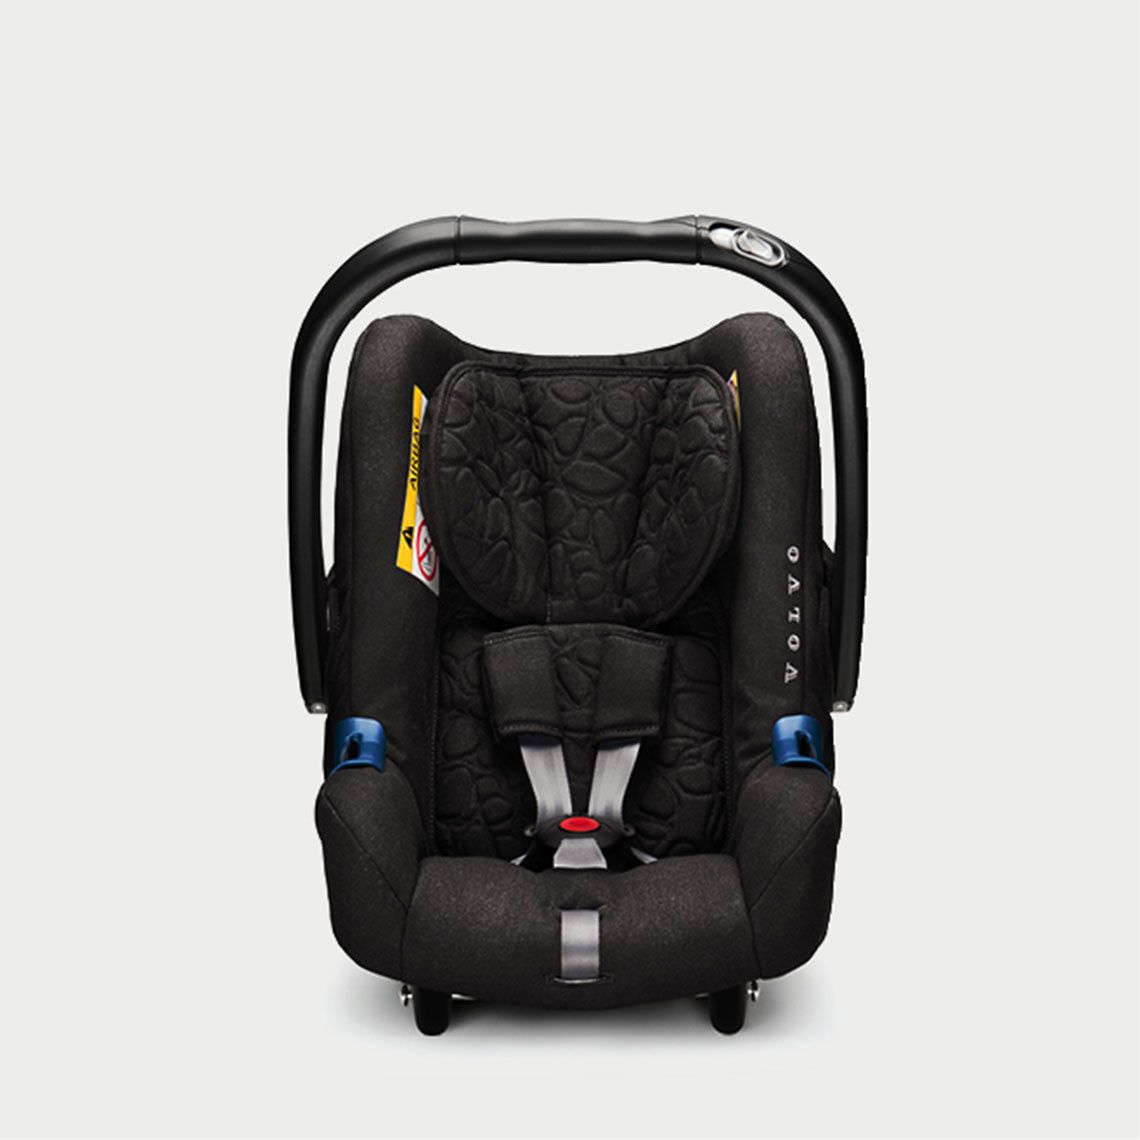 Le cosy 0+ BABY-SAFE PLUS II